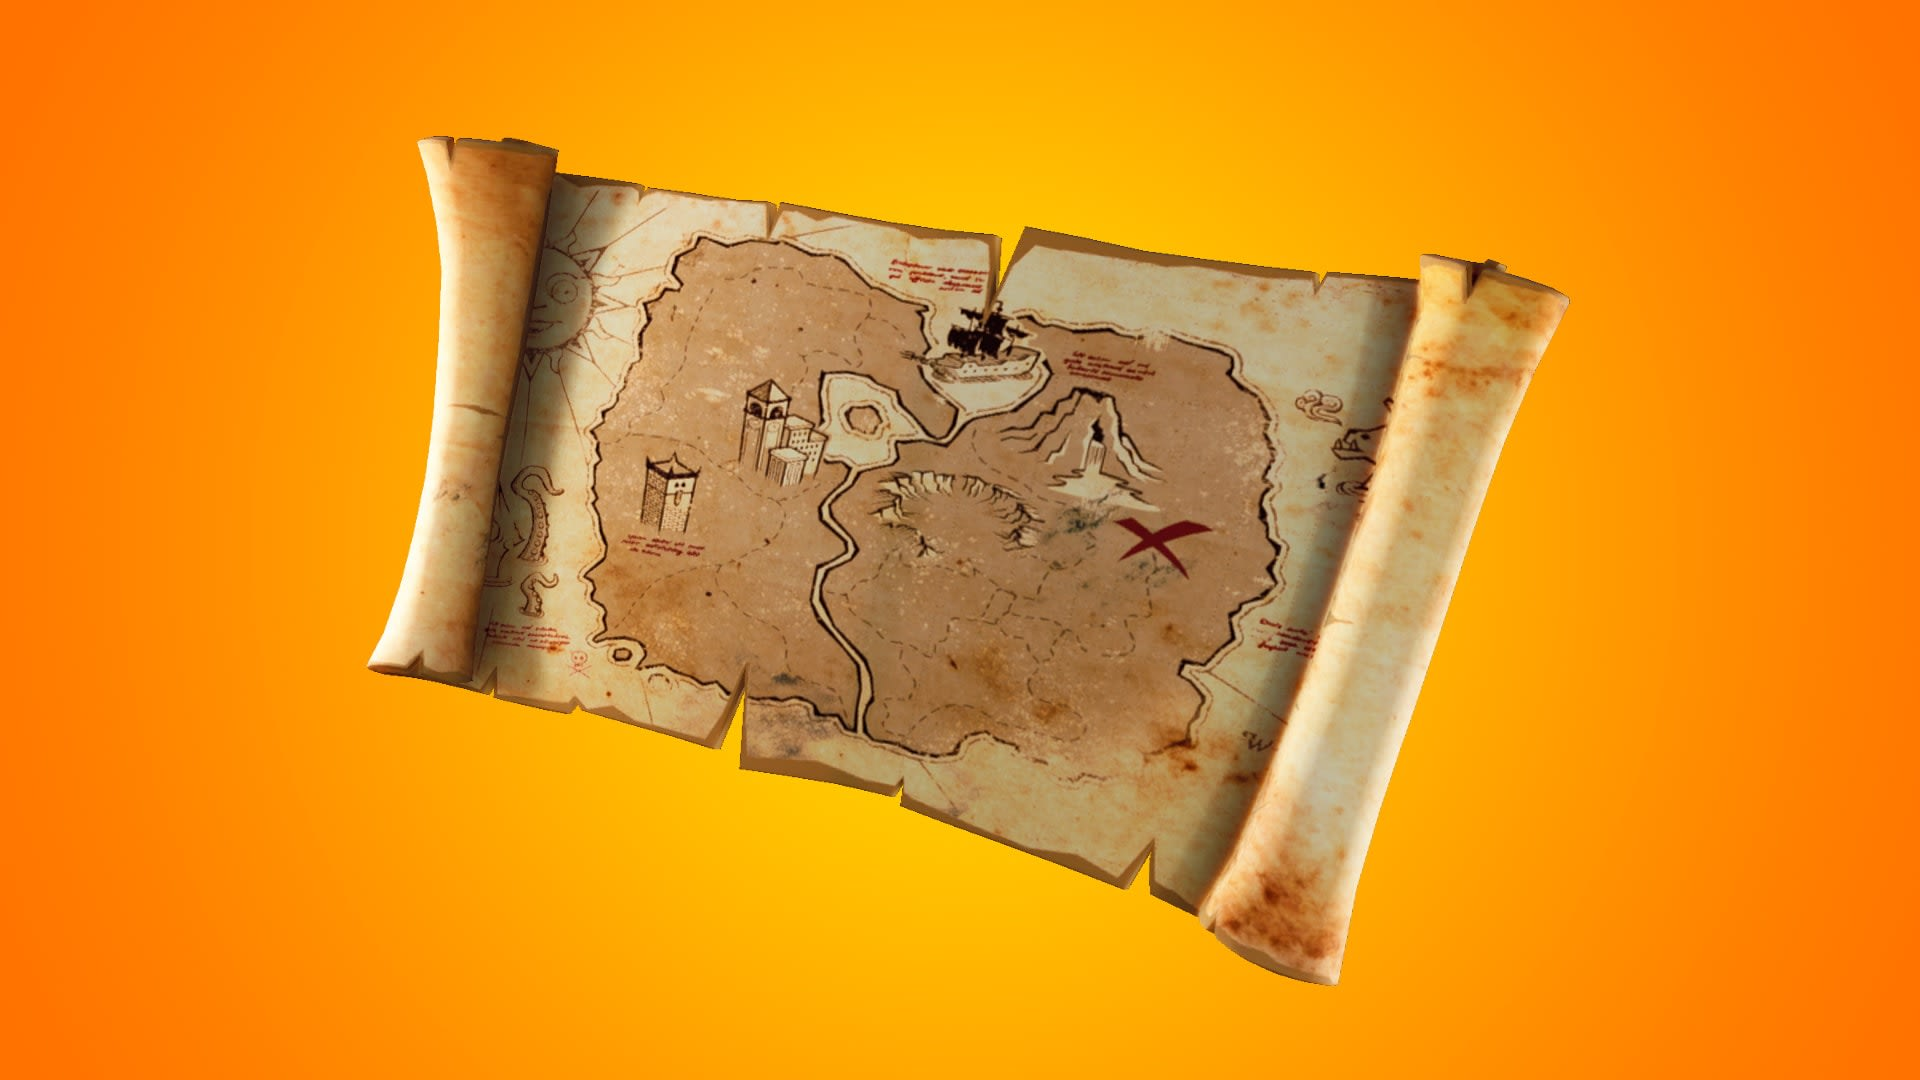 Treasure hunts have come to 'Fortnite'